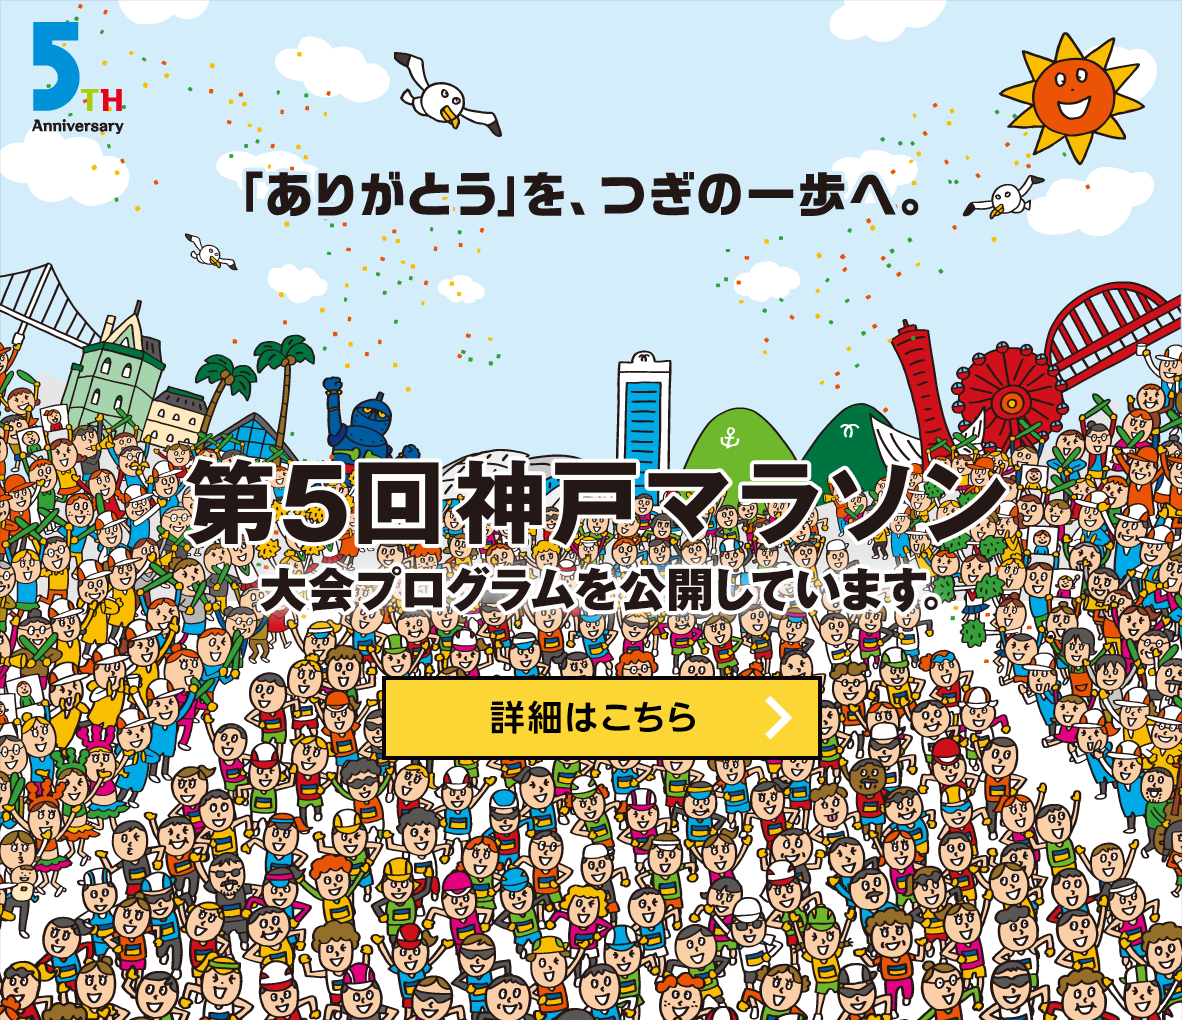 Turn Your Appreciation into Action | Kobe Marathon 2015 | Open to 20,000 Runners!